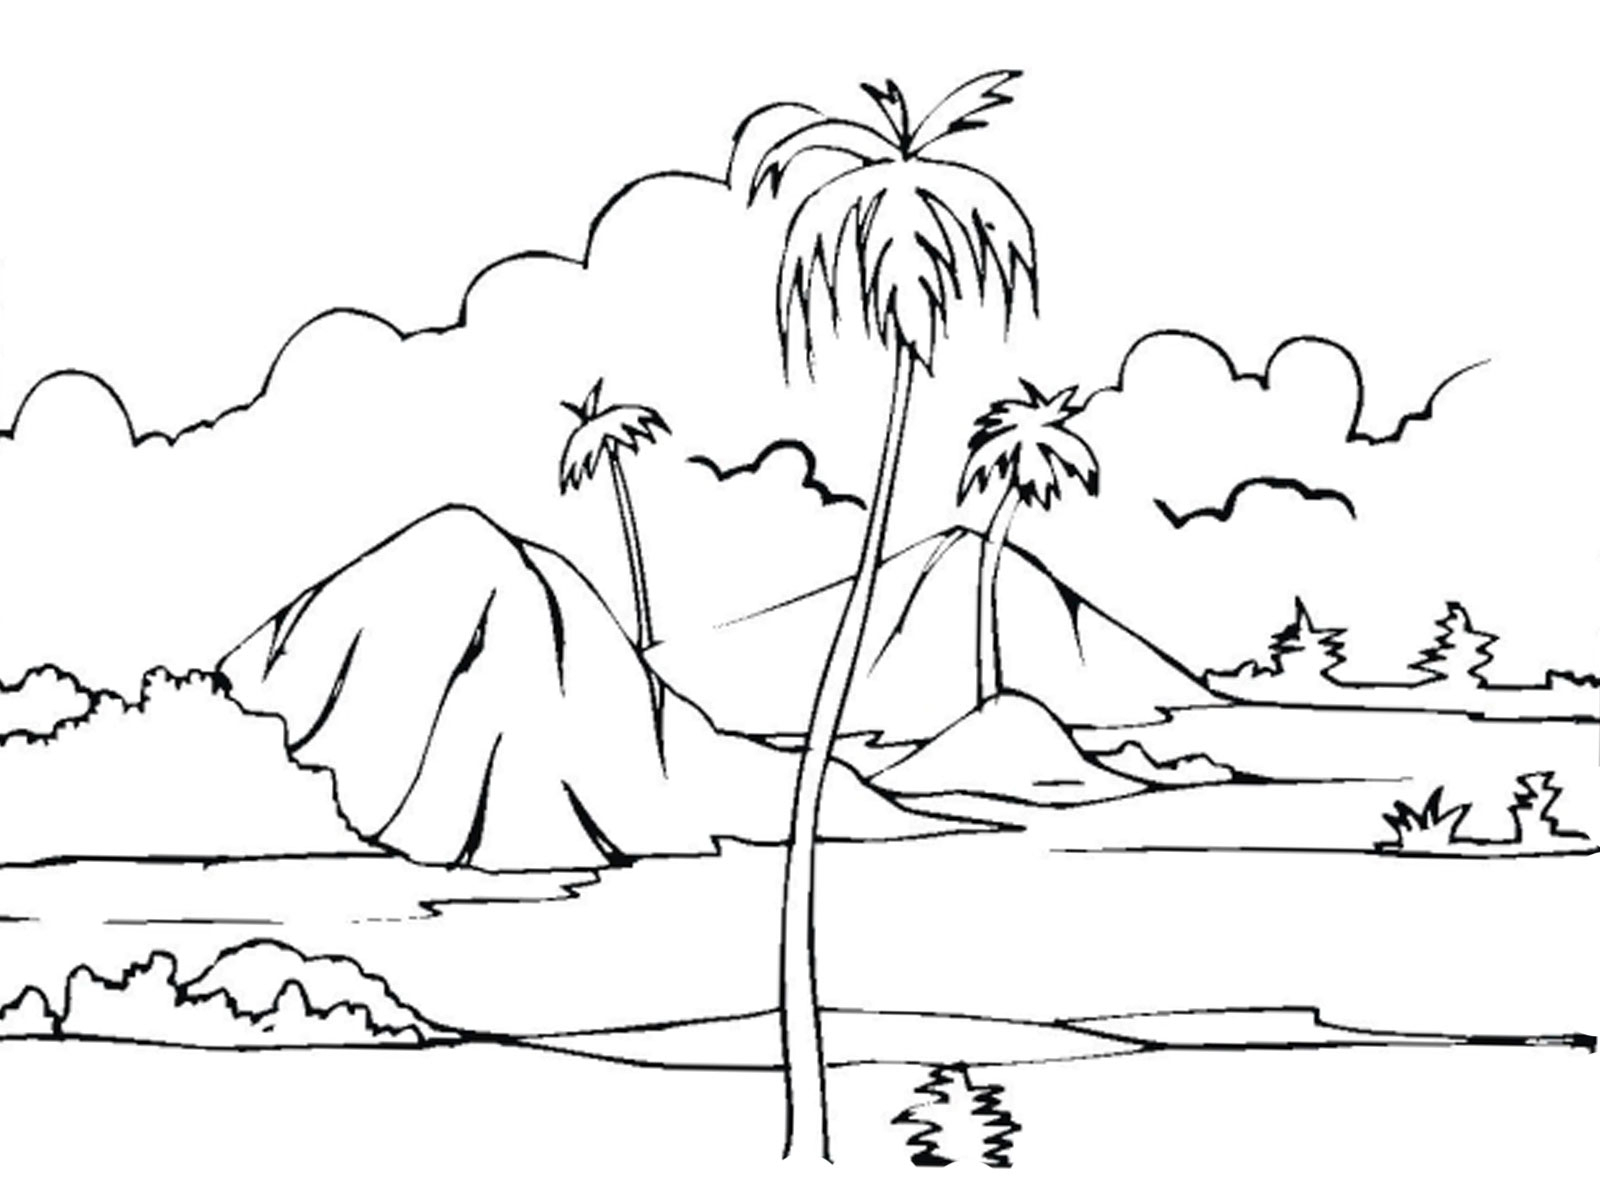 1600x1200 Nature Scenery Outline Images Pencil Outline In Scenery Nature